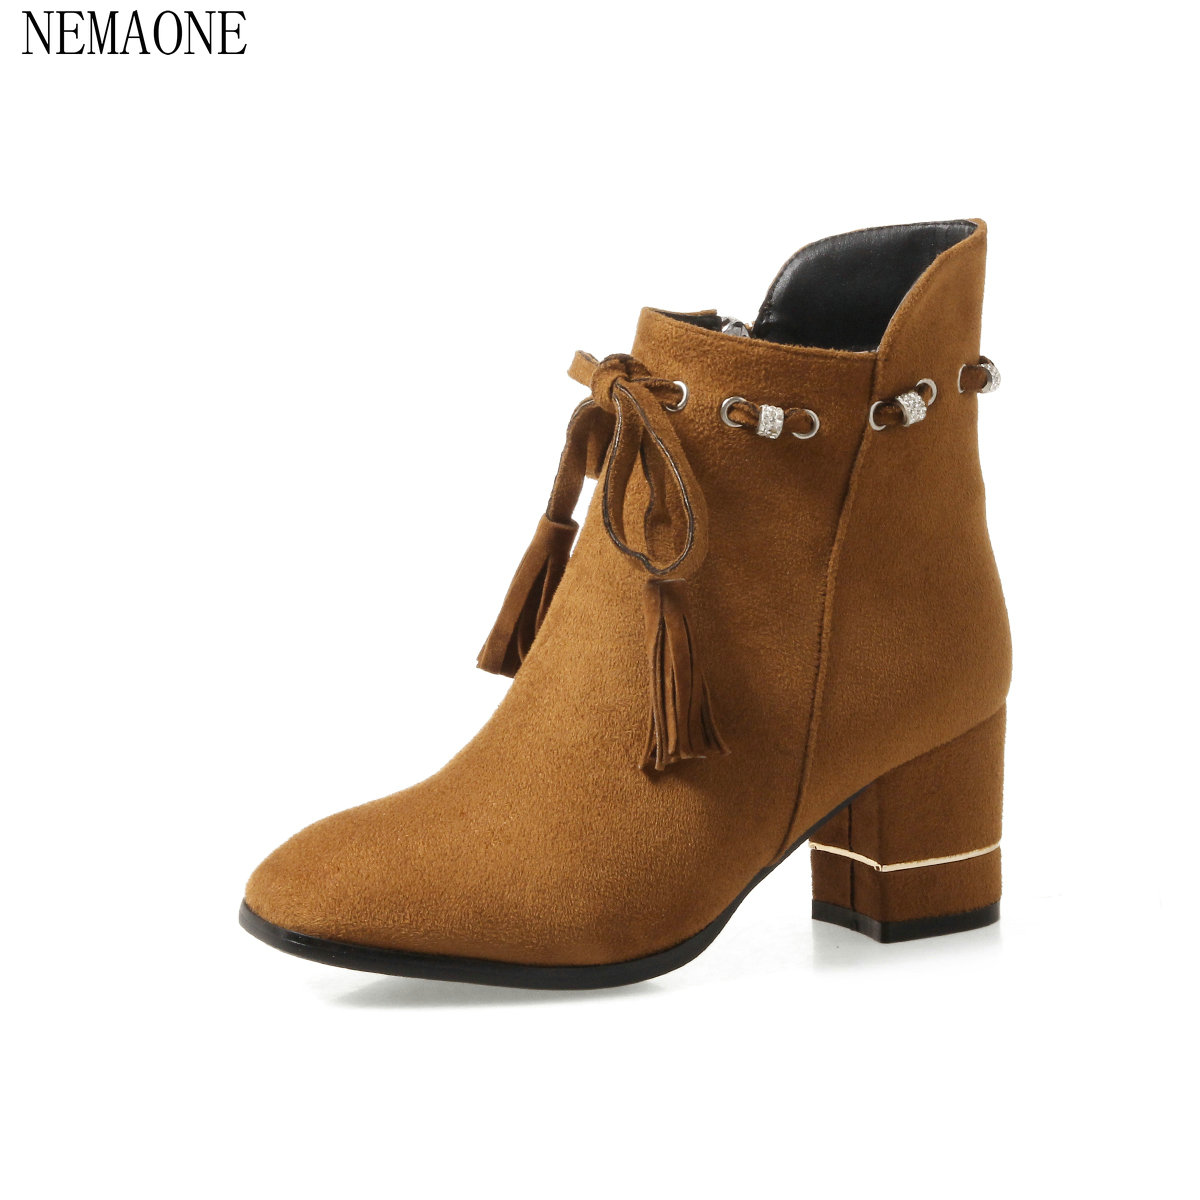 NEMAONE 2018 Women Boots Short Zipper Square High Heels Ankle Boots Western Style Pointed Toe Ladies Boots Shoes Size 34-43 цены онлайн